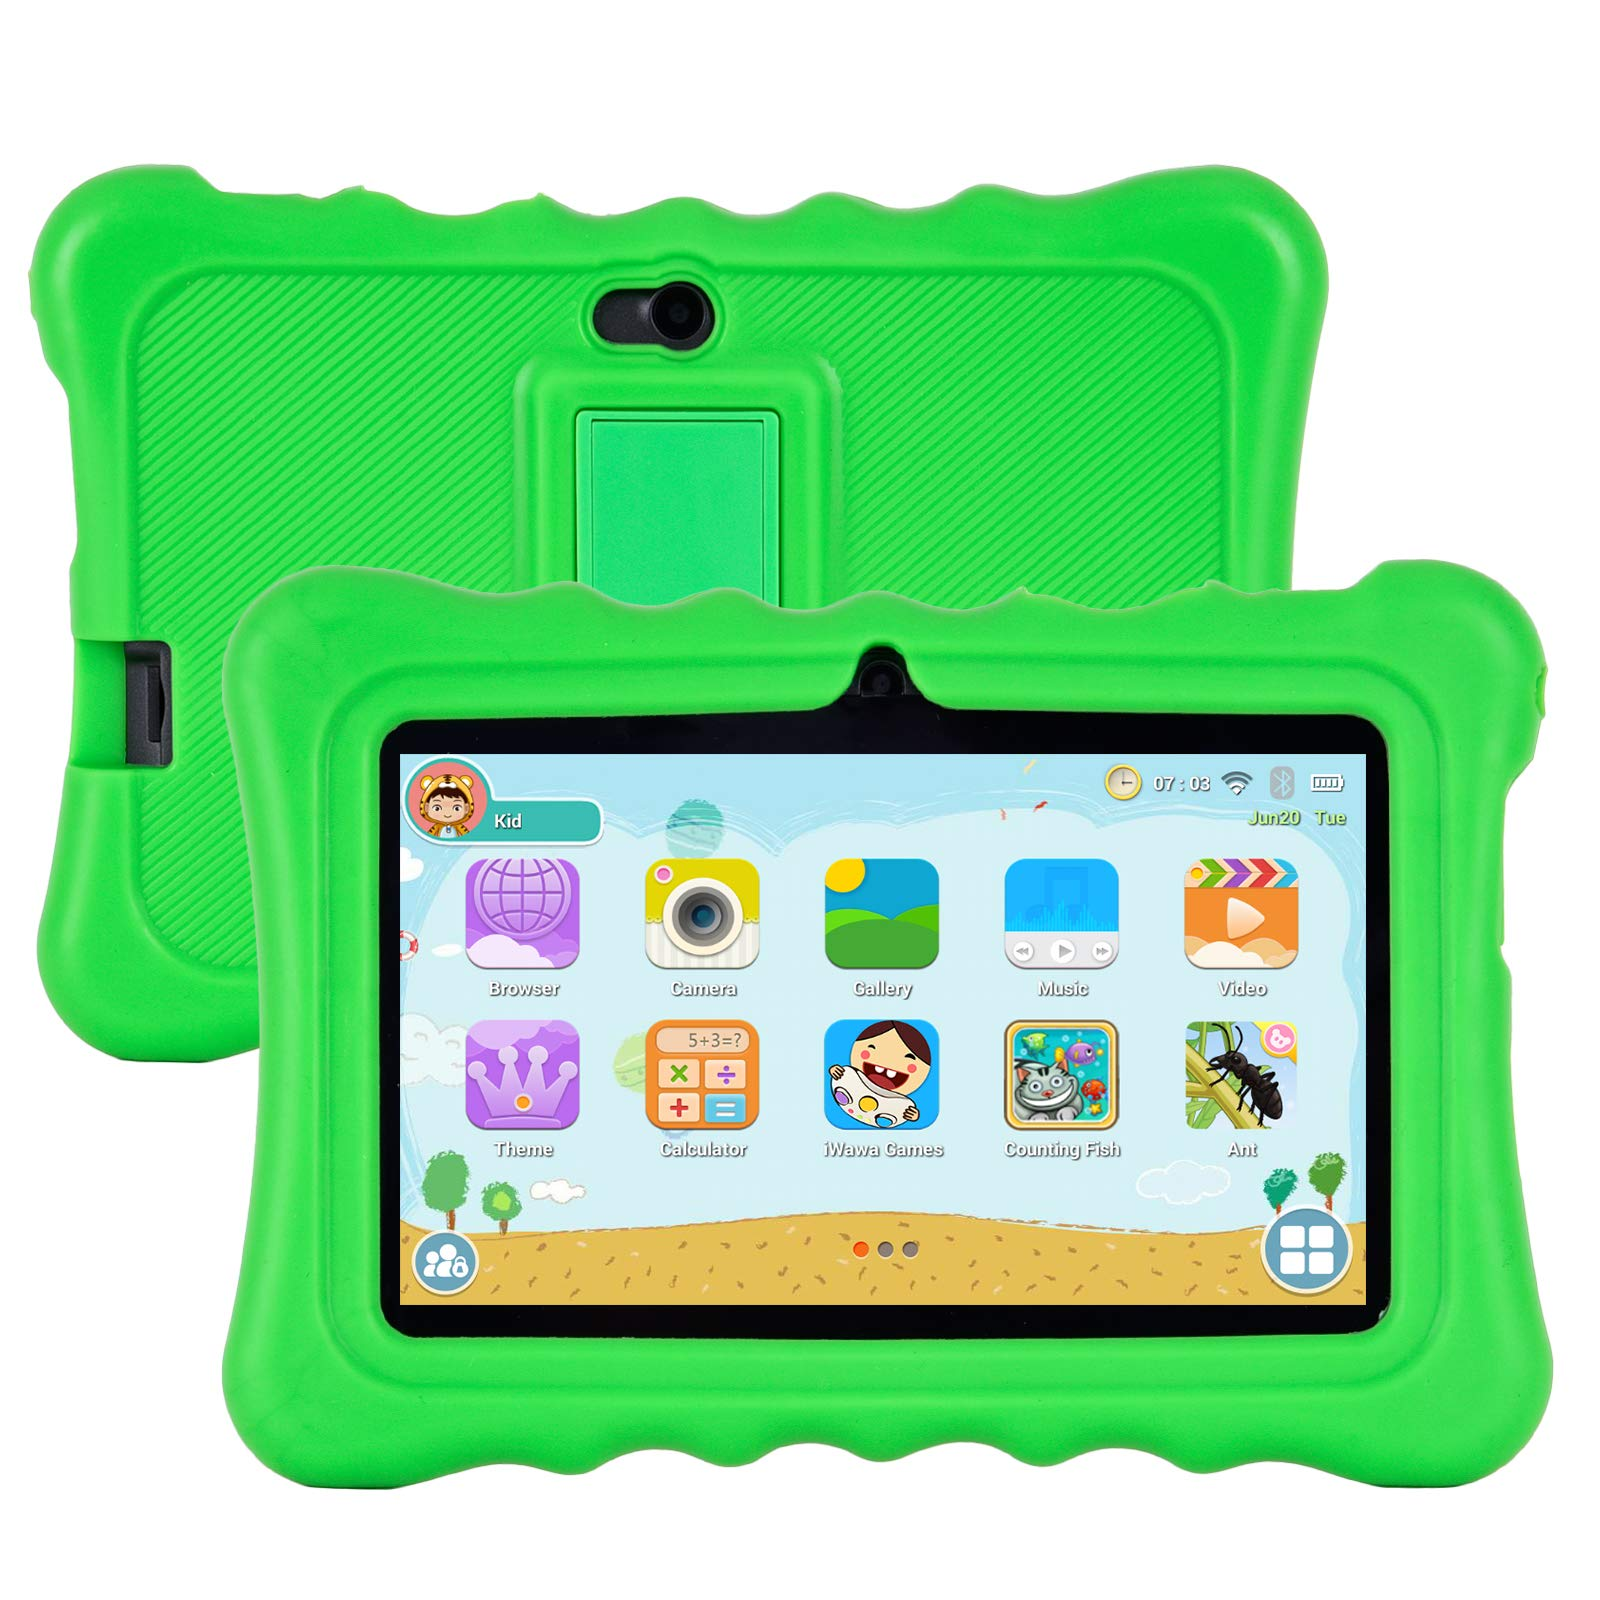 Xgody T702 7 Inch HD Kids Tablet PC for Kids Quad Core Android 8.1 1GB RAM 16GB ROM Touch Screen with WiFi Pre-Loaded 3D Game Dual Camera Green